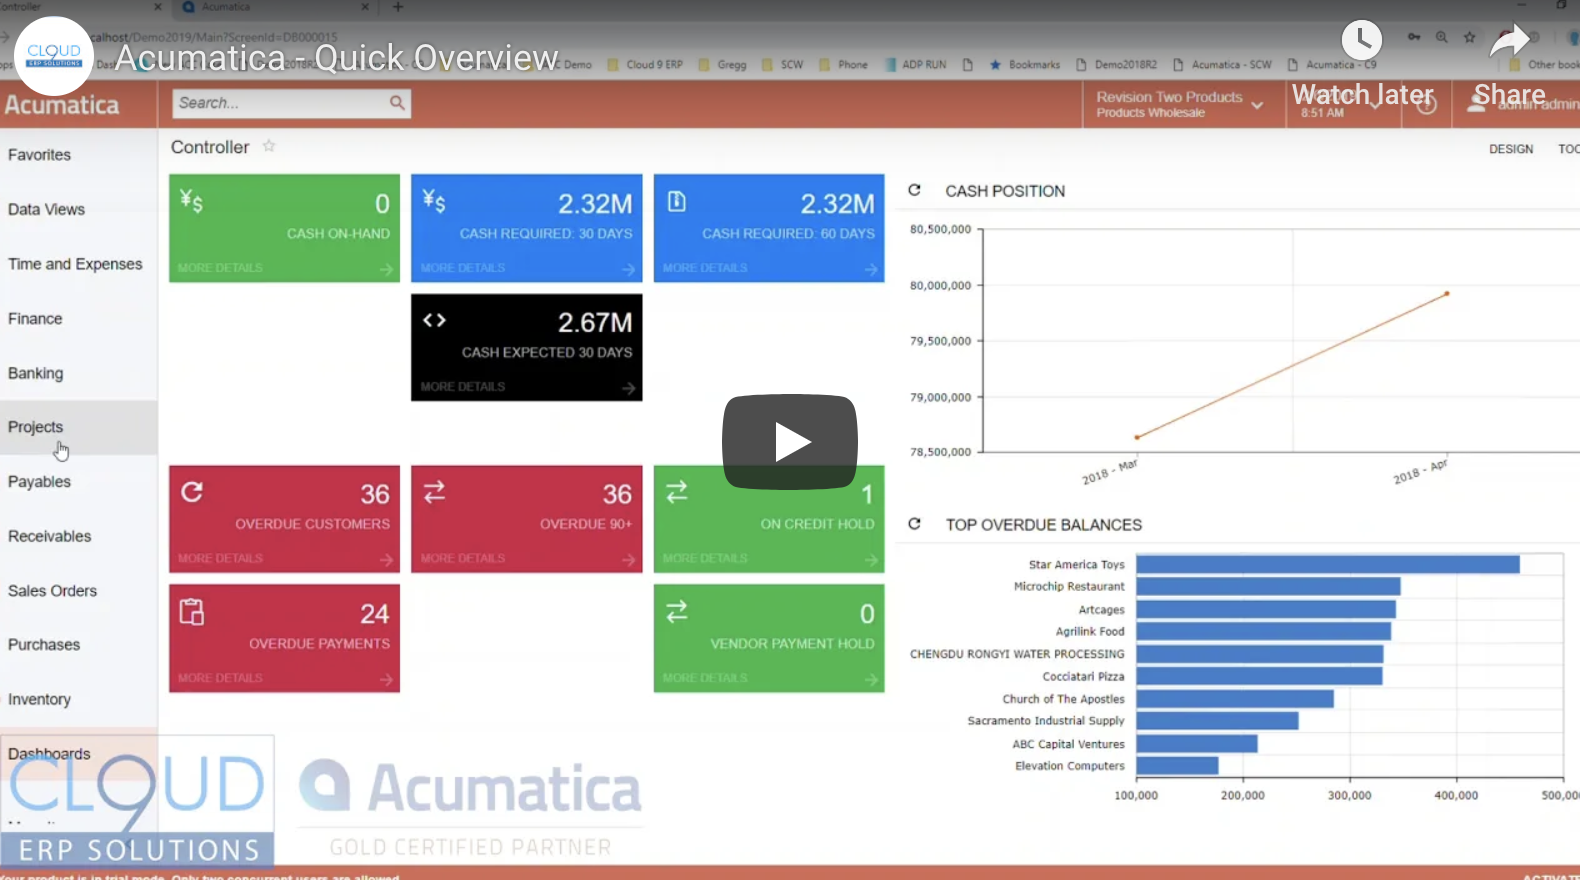 Acumatica-Demo-Quick-Overview